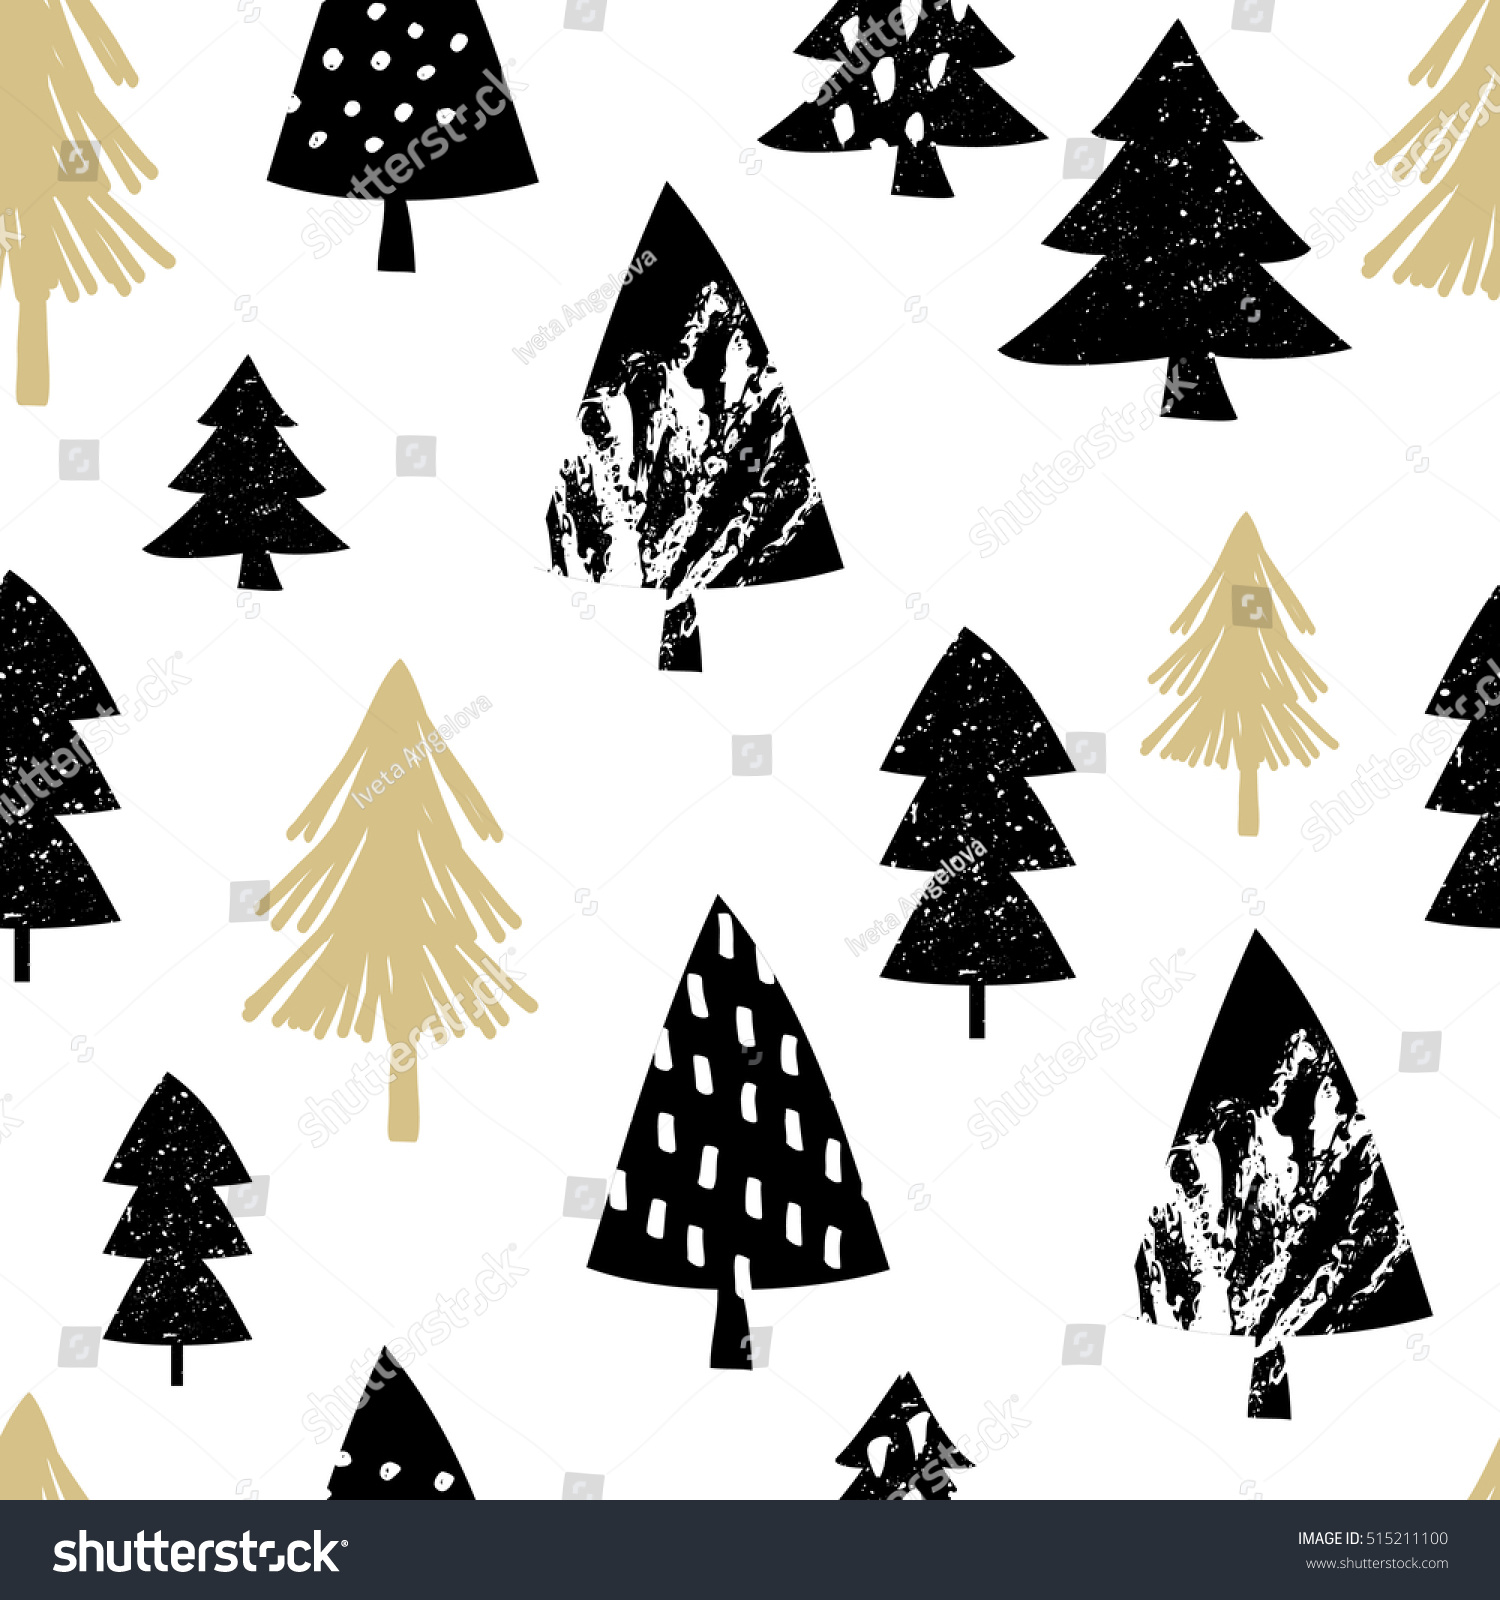 Seamless Repeating Pattern Christmas Trees Black Stock Vector